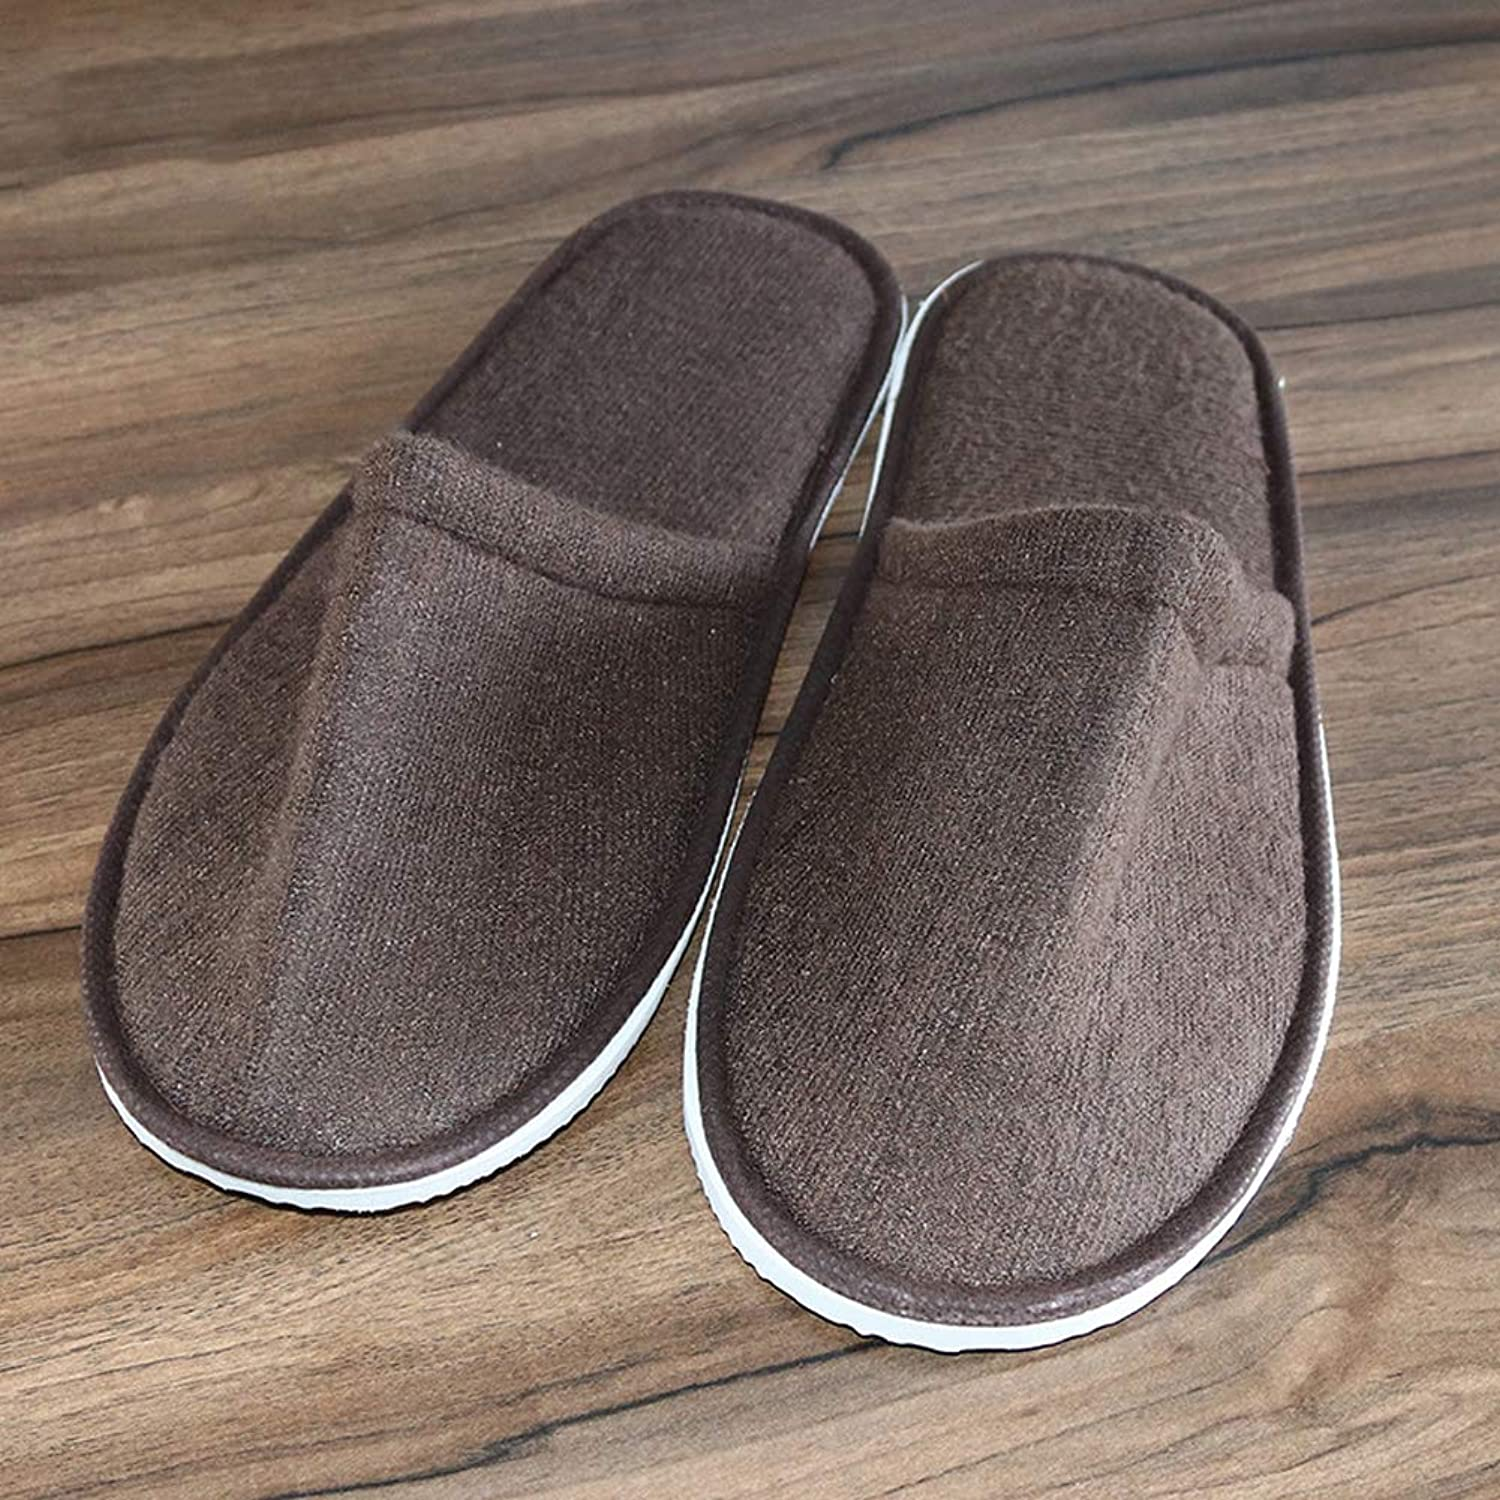 Hotel Disposable Slippers Disposable Spa Salon Slippers,Men Women Closed Toes- Non-Slip,E,100Pair